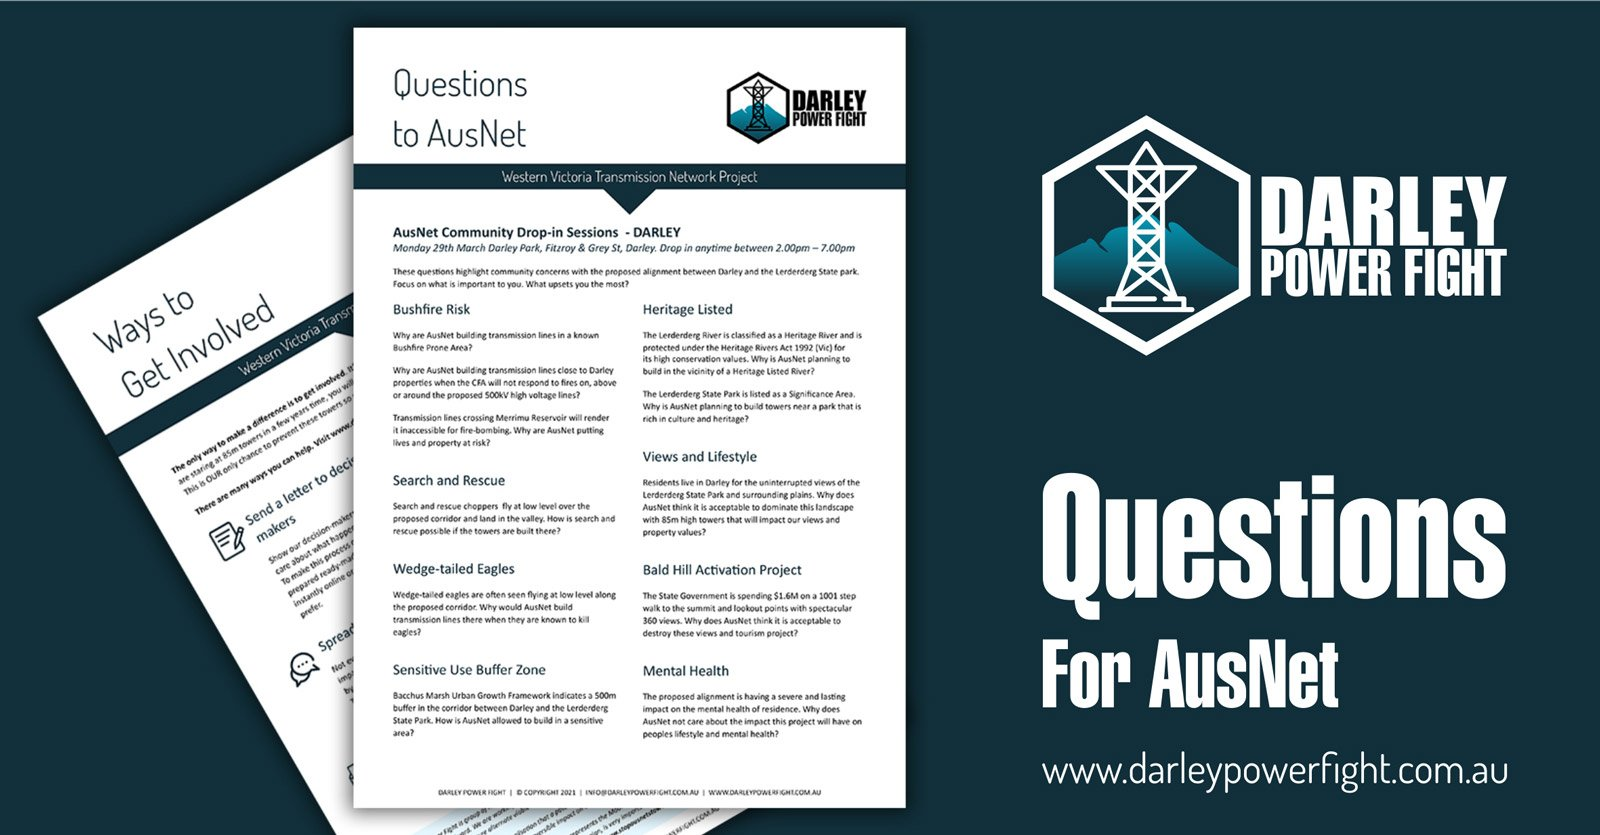 Questions for Ausnet